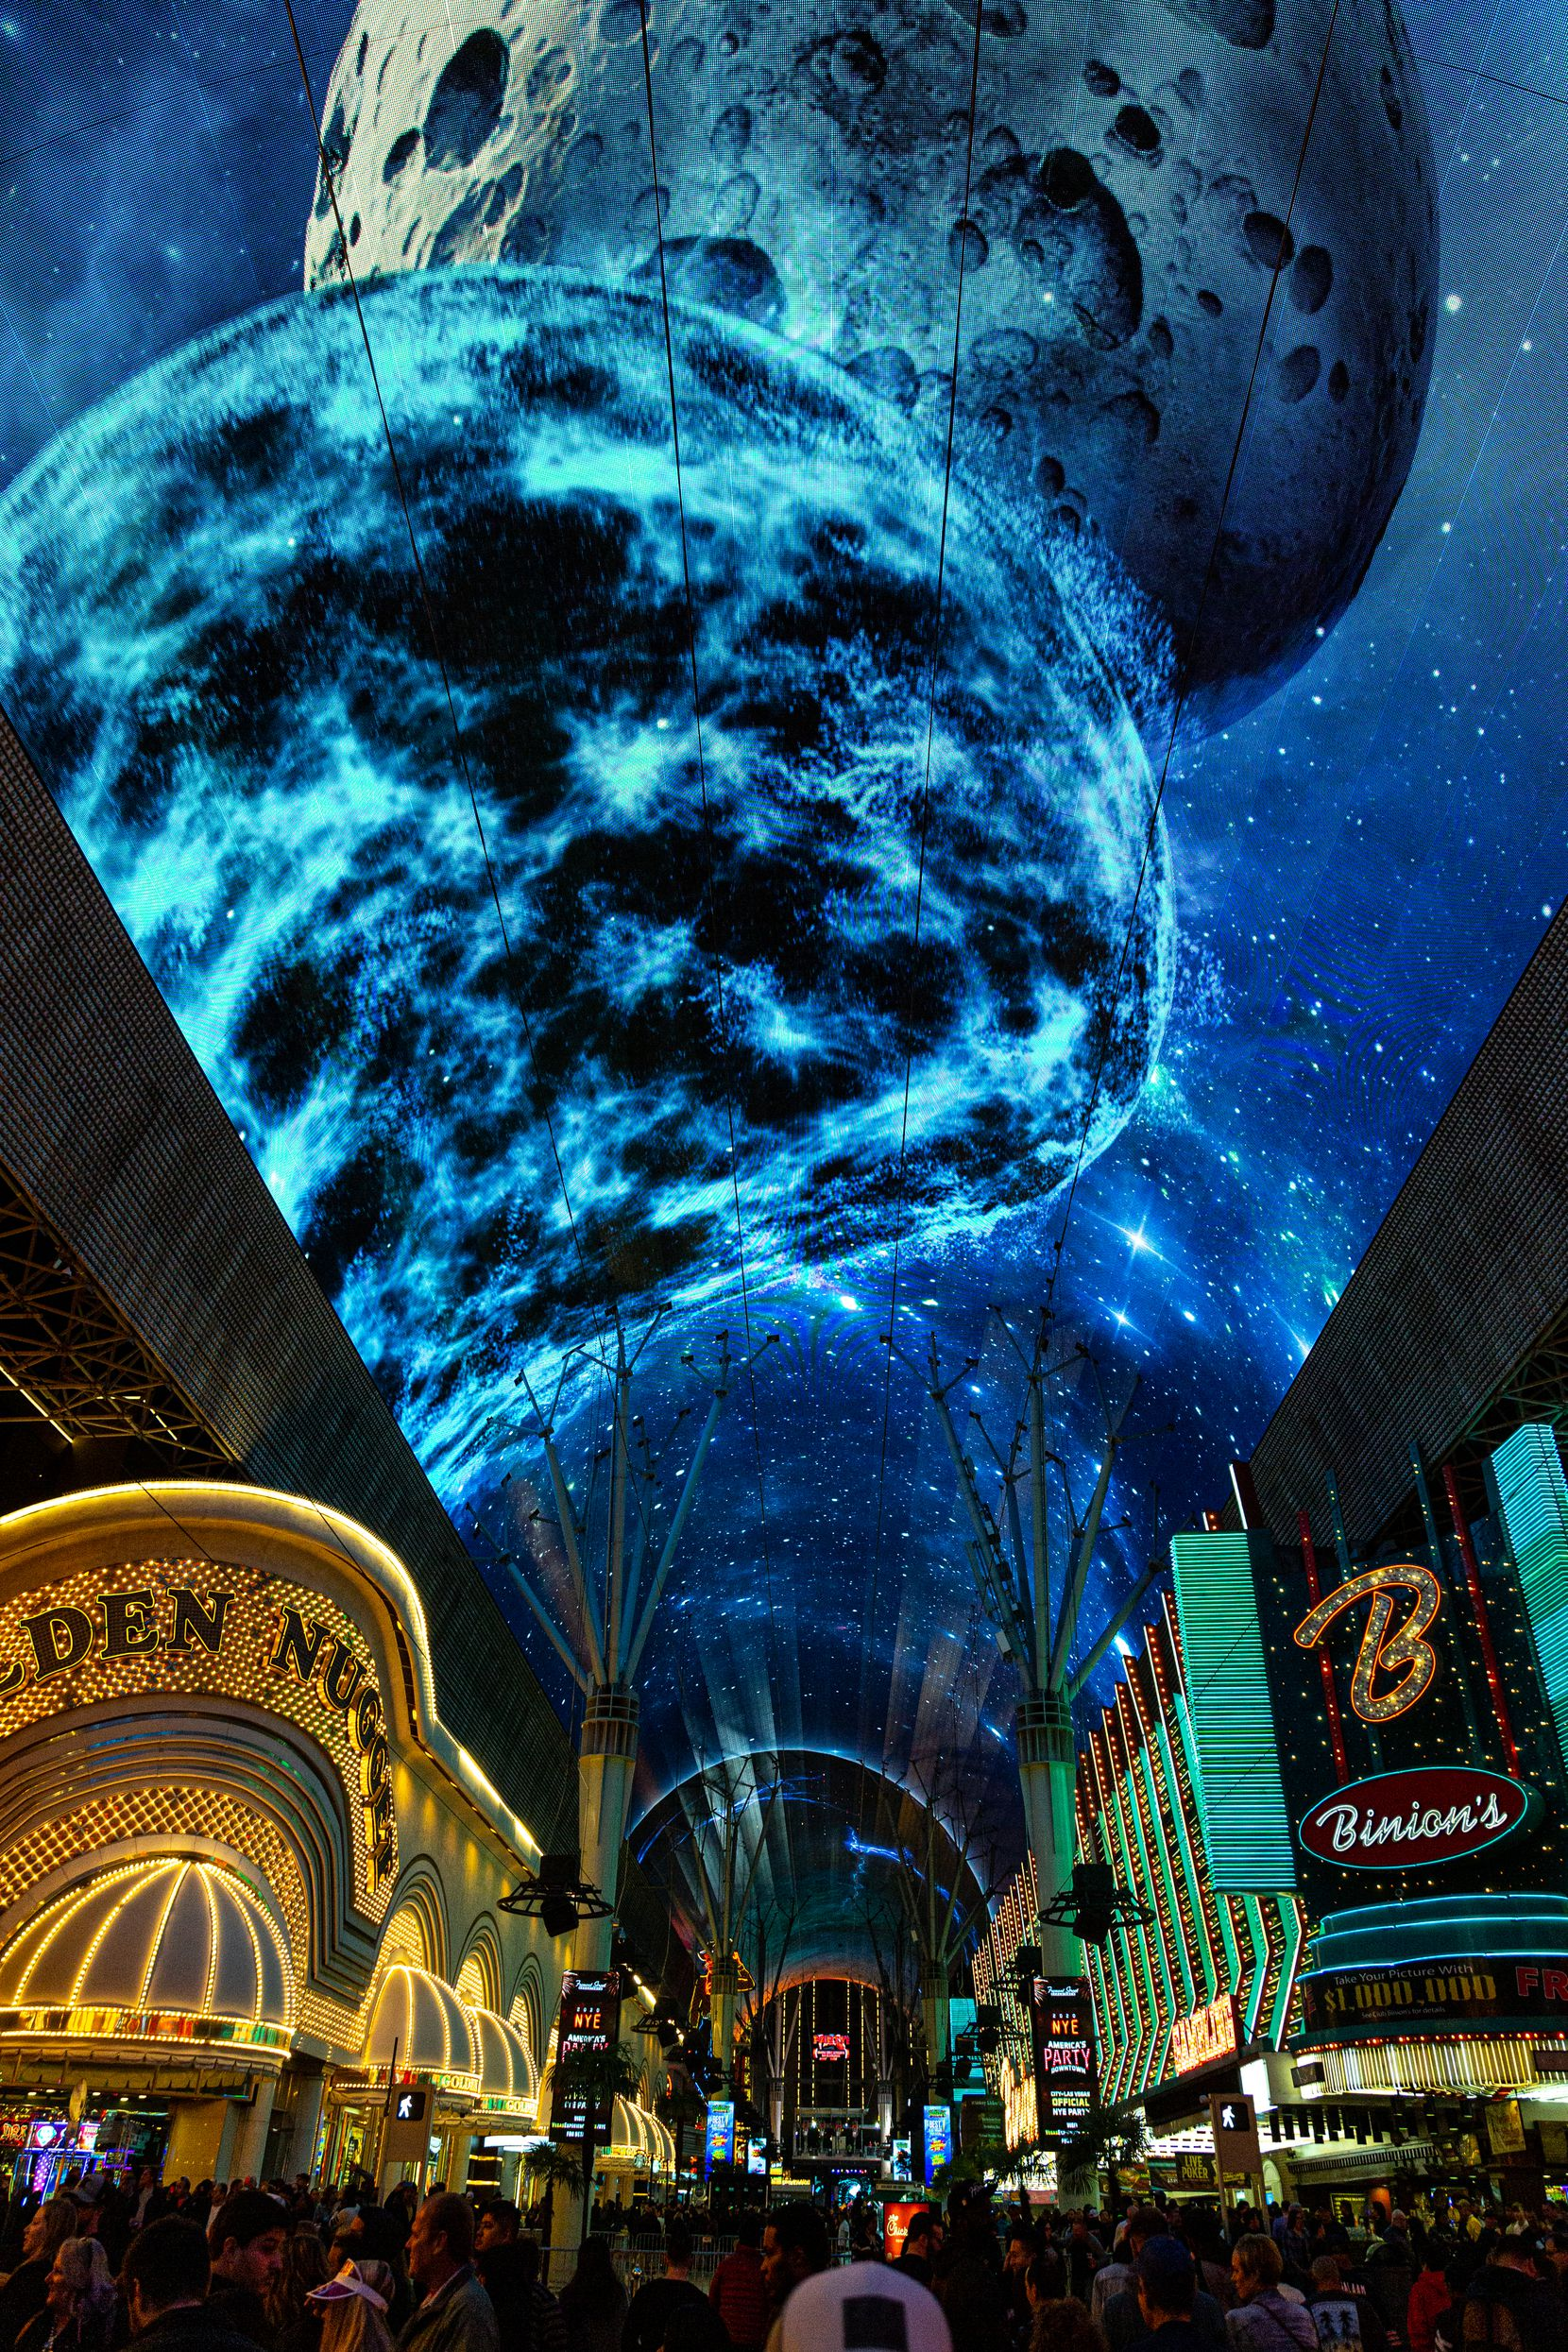 The Fremont Street Experience has debuted a new collection of 3-D graphics on its upgraded Viva Vision canopy screen.